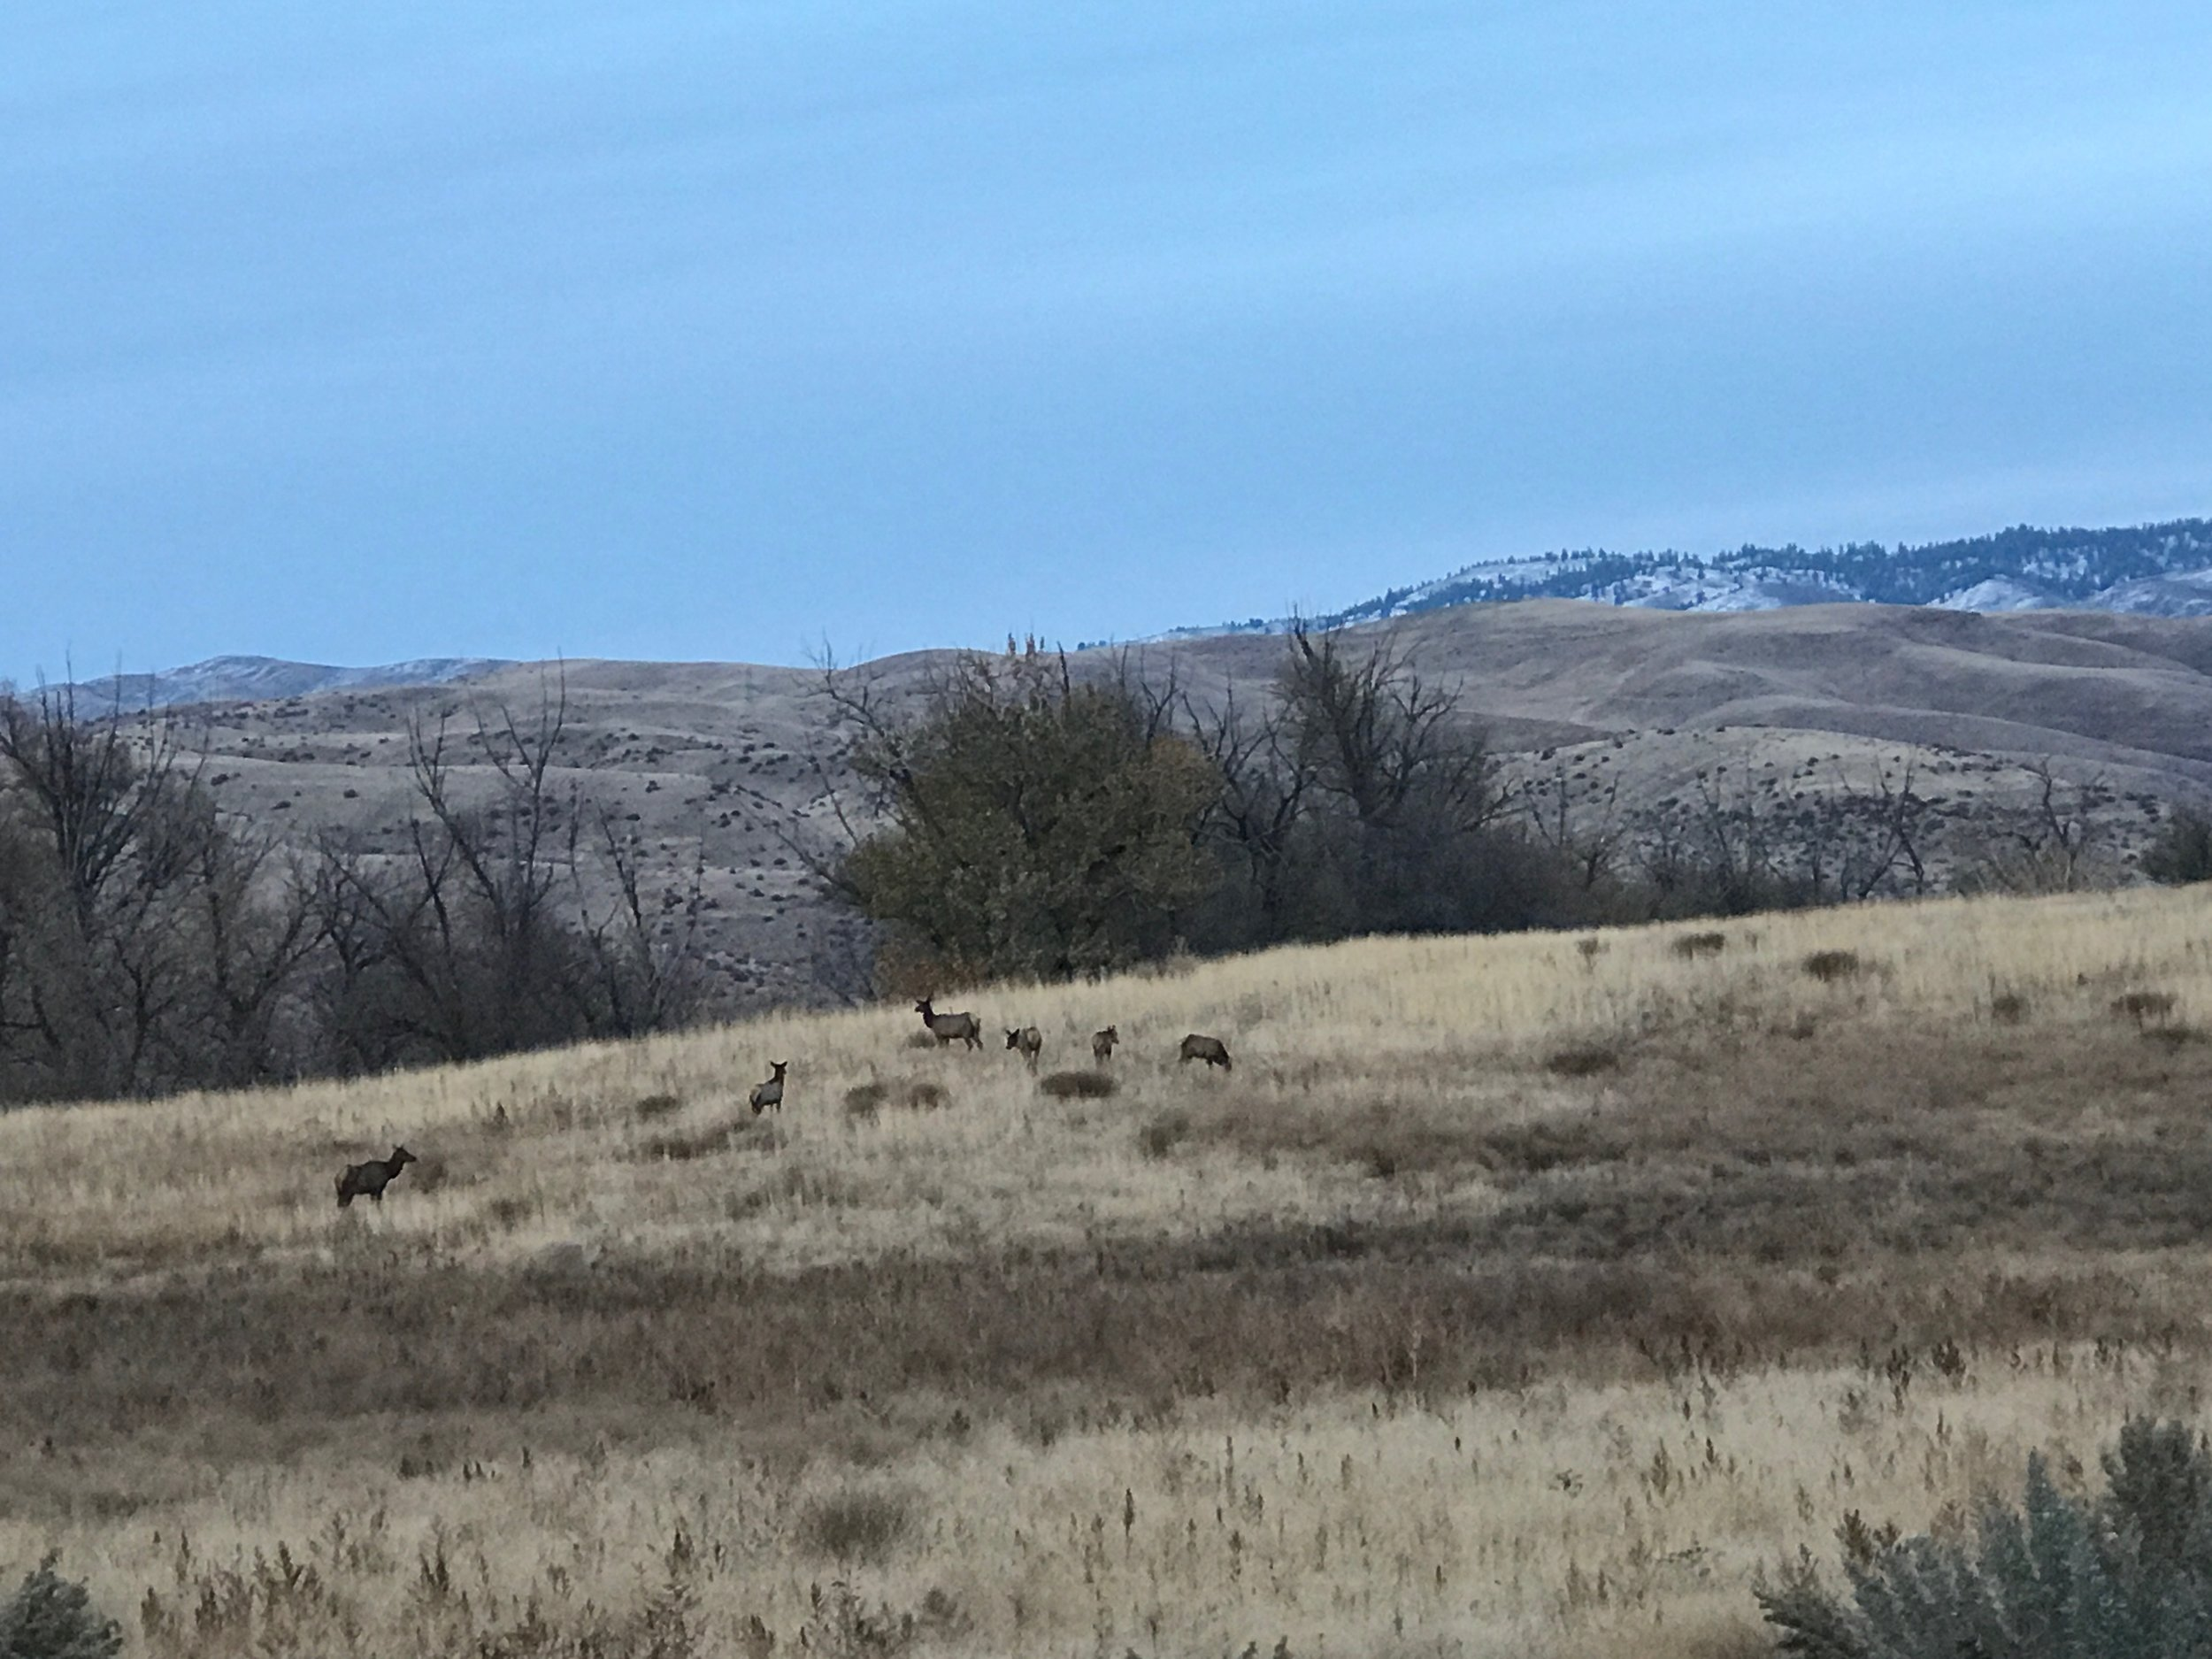 Photo of elk in the Dry Creek Valley by  Justin Hull.